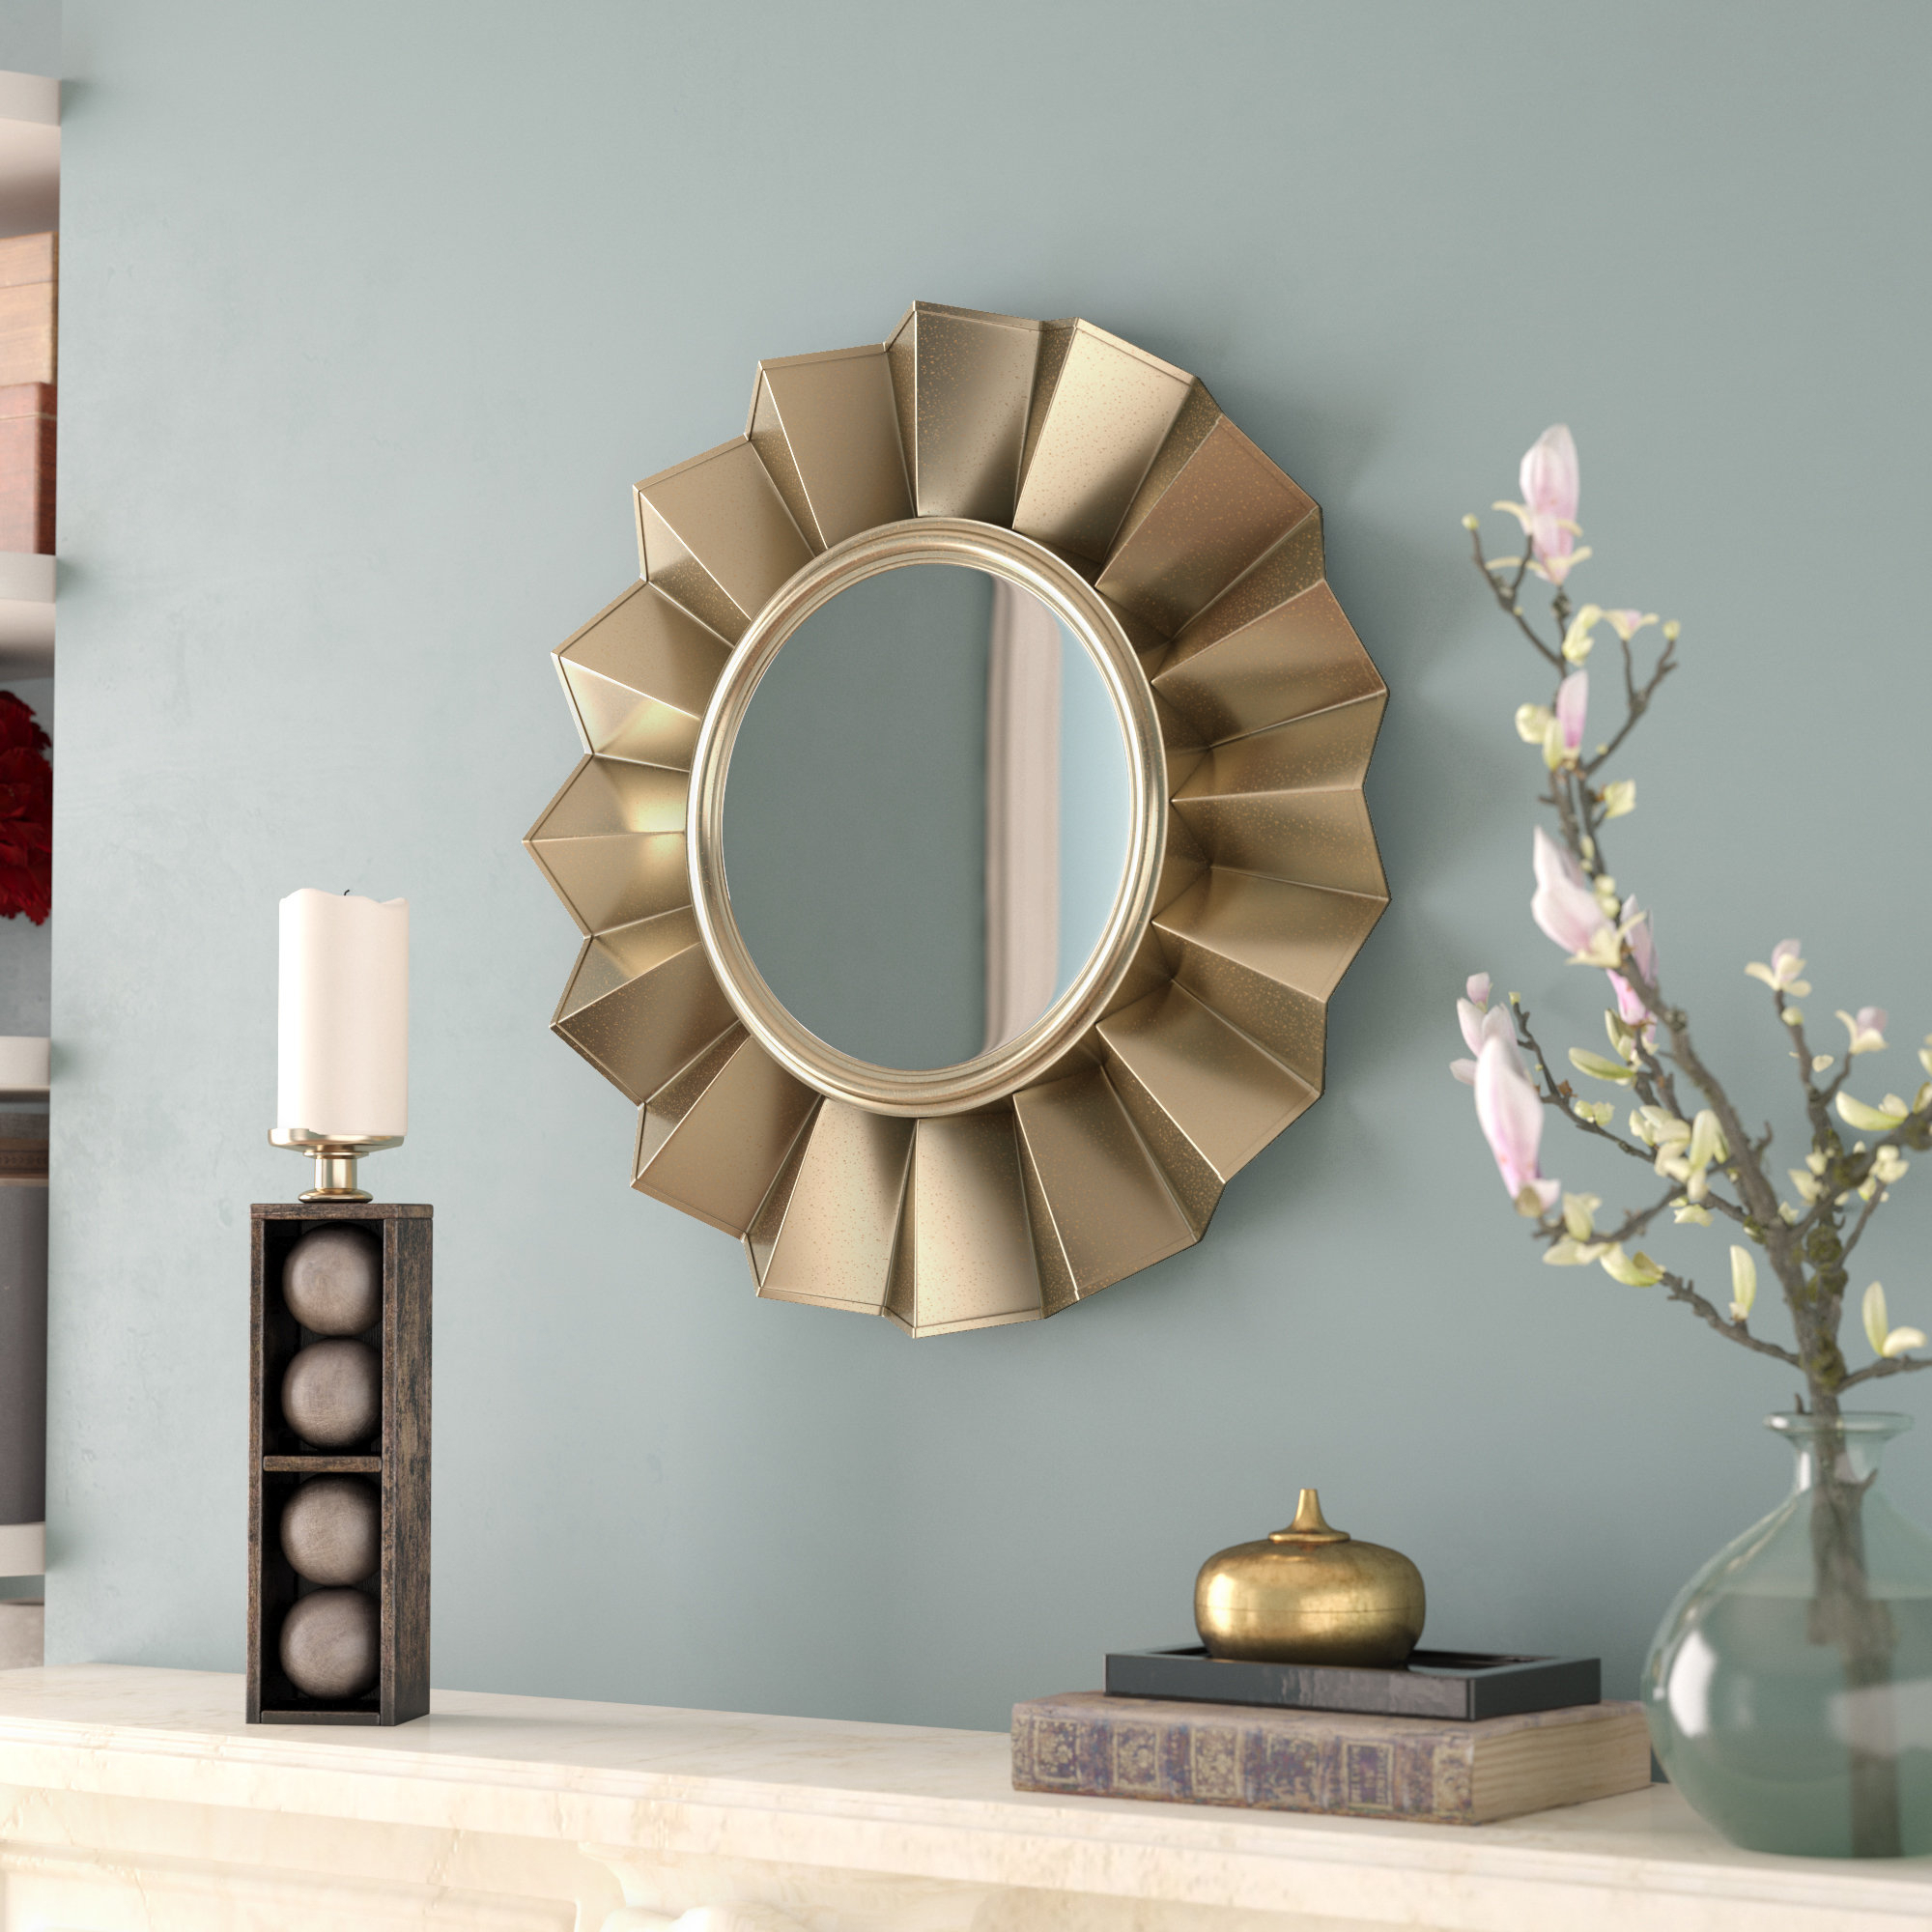 Vertical Round Wall Mirror With Karn Vertical Round Resin Wall Mirrors (Photo 2 of 20)